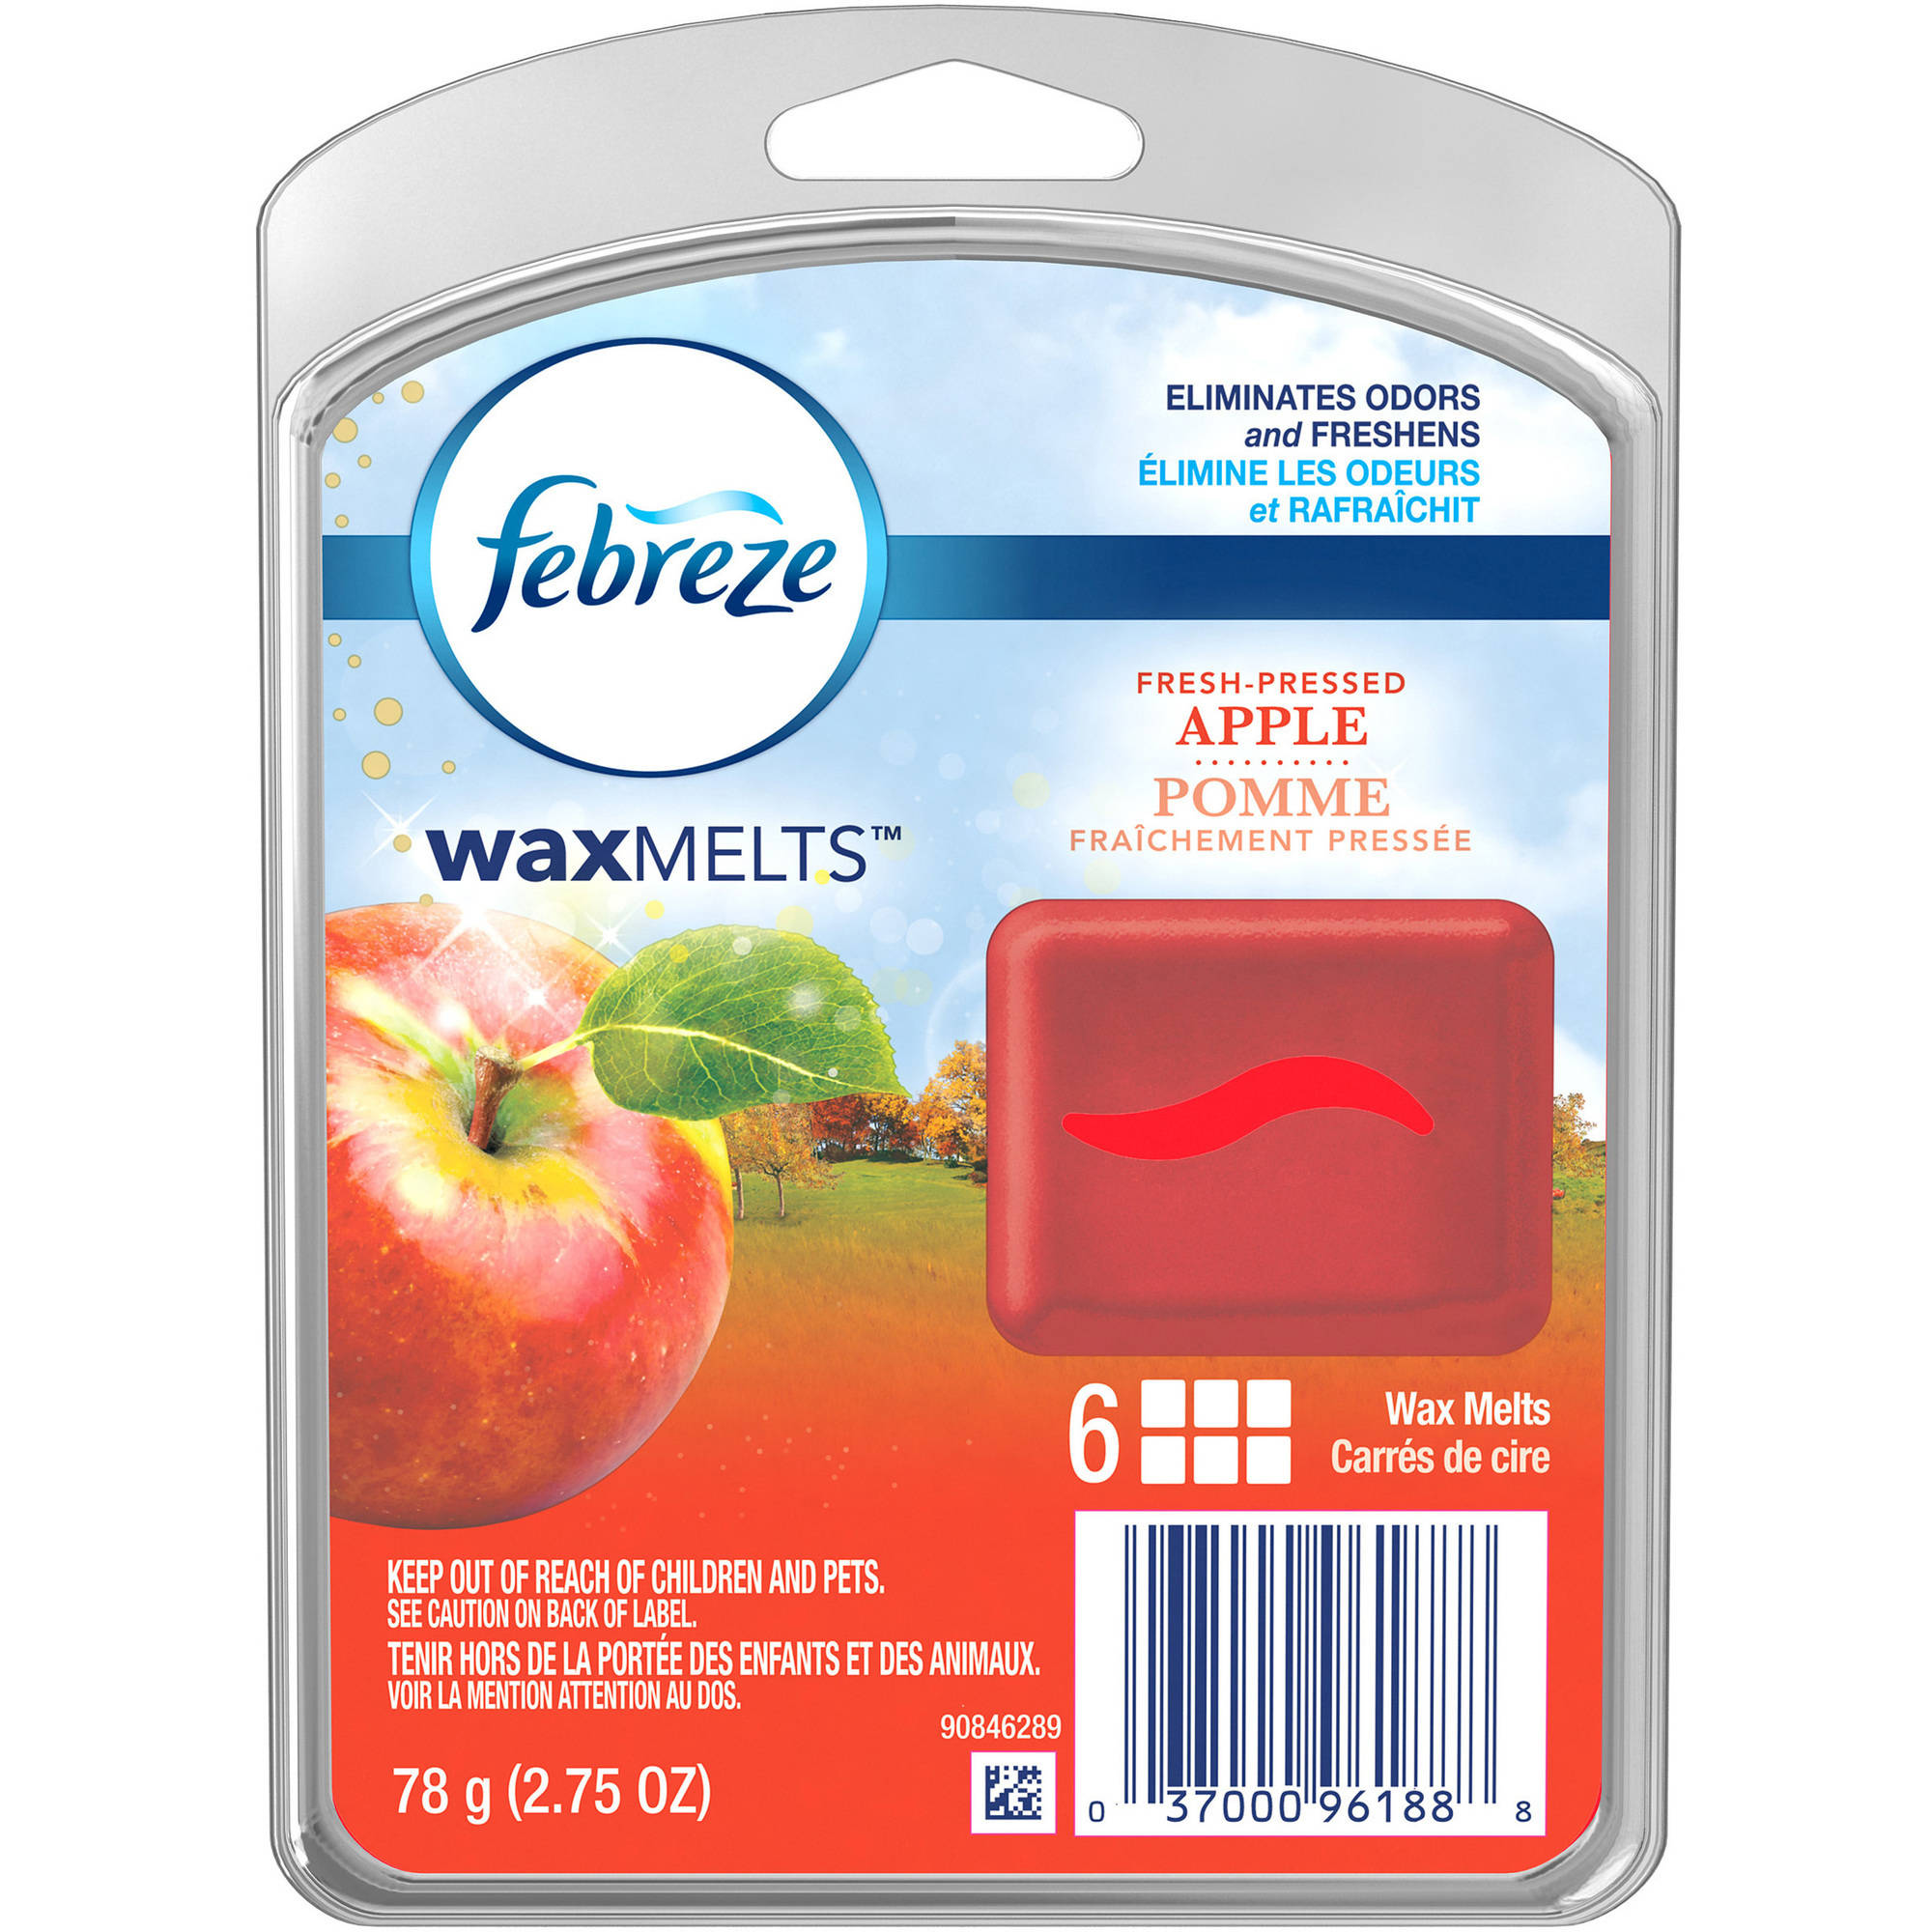 Febreze Wax Melts Fresh-Pressed Apple Air Freshener, 6 count, 2.75 oz